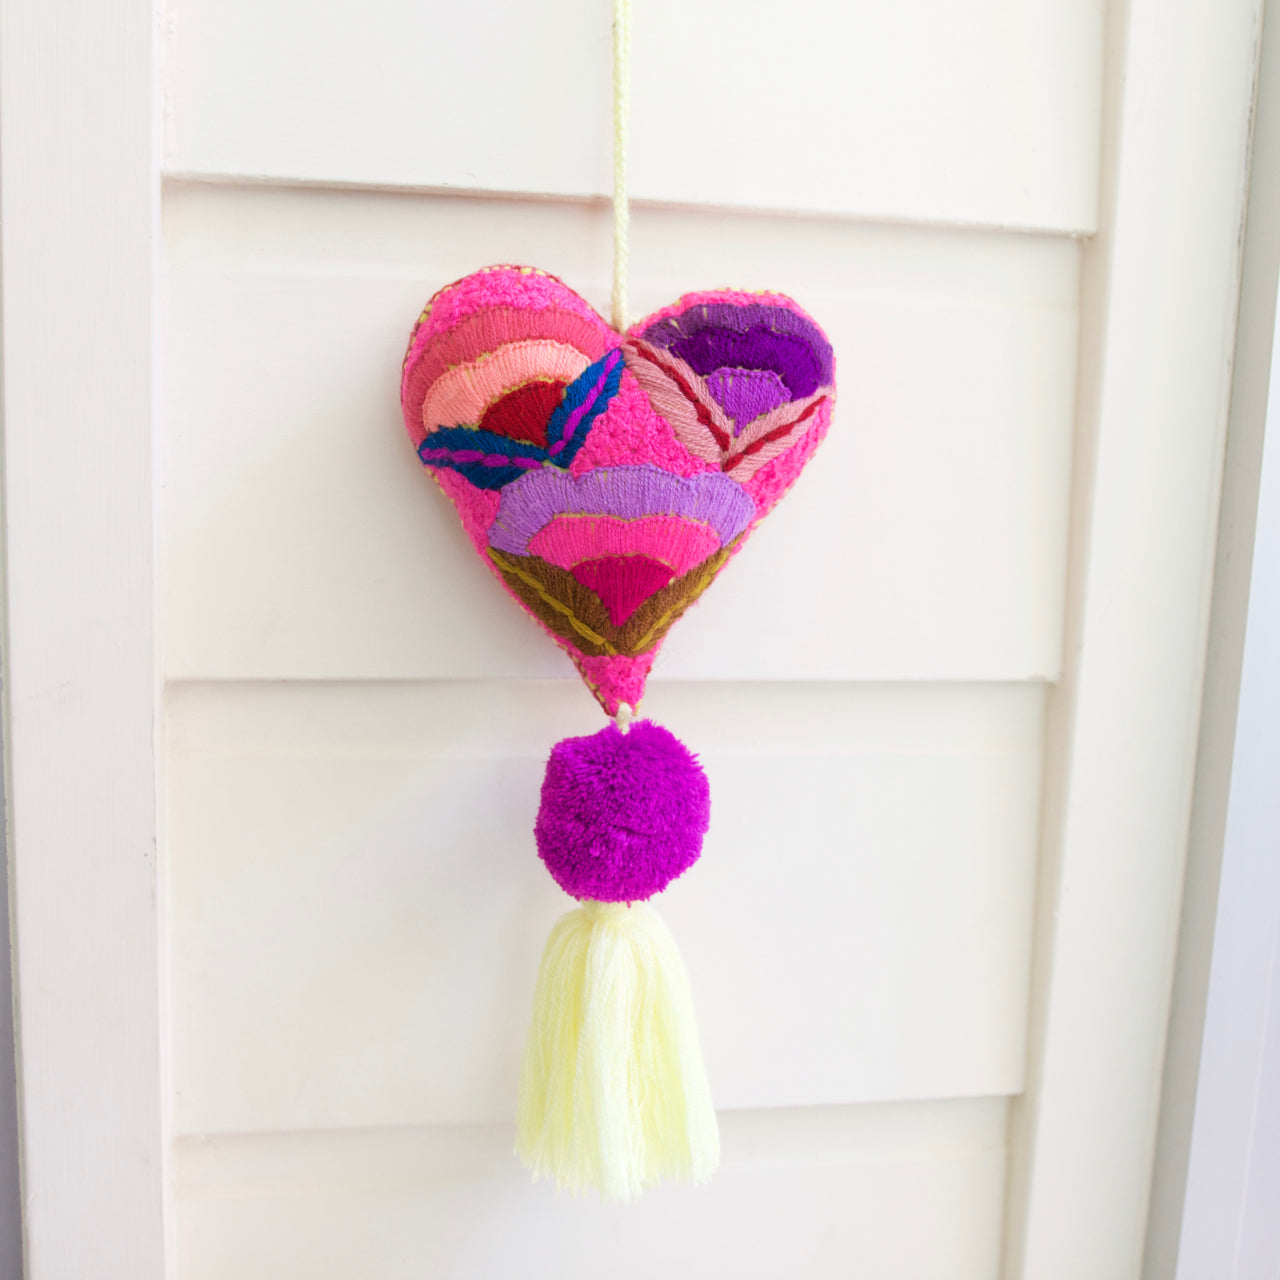 Corazon Pom Pom 50  Decor Pink - Cielo Collective handmade Mexico Guatemala